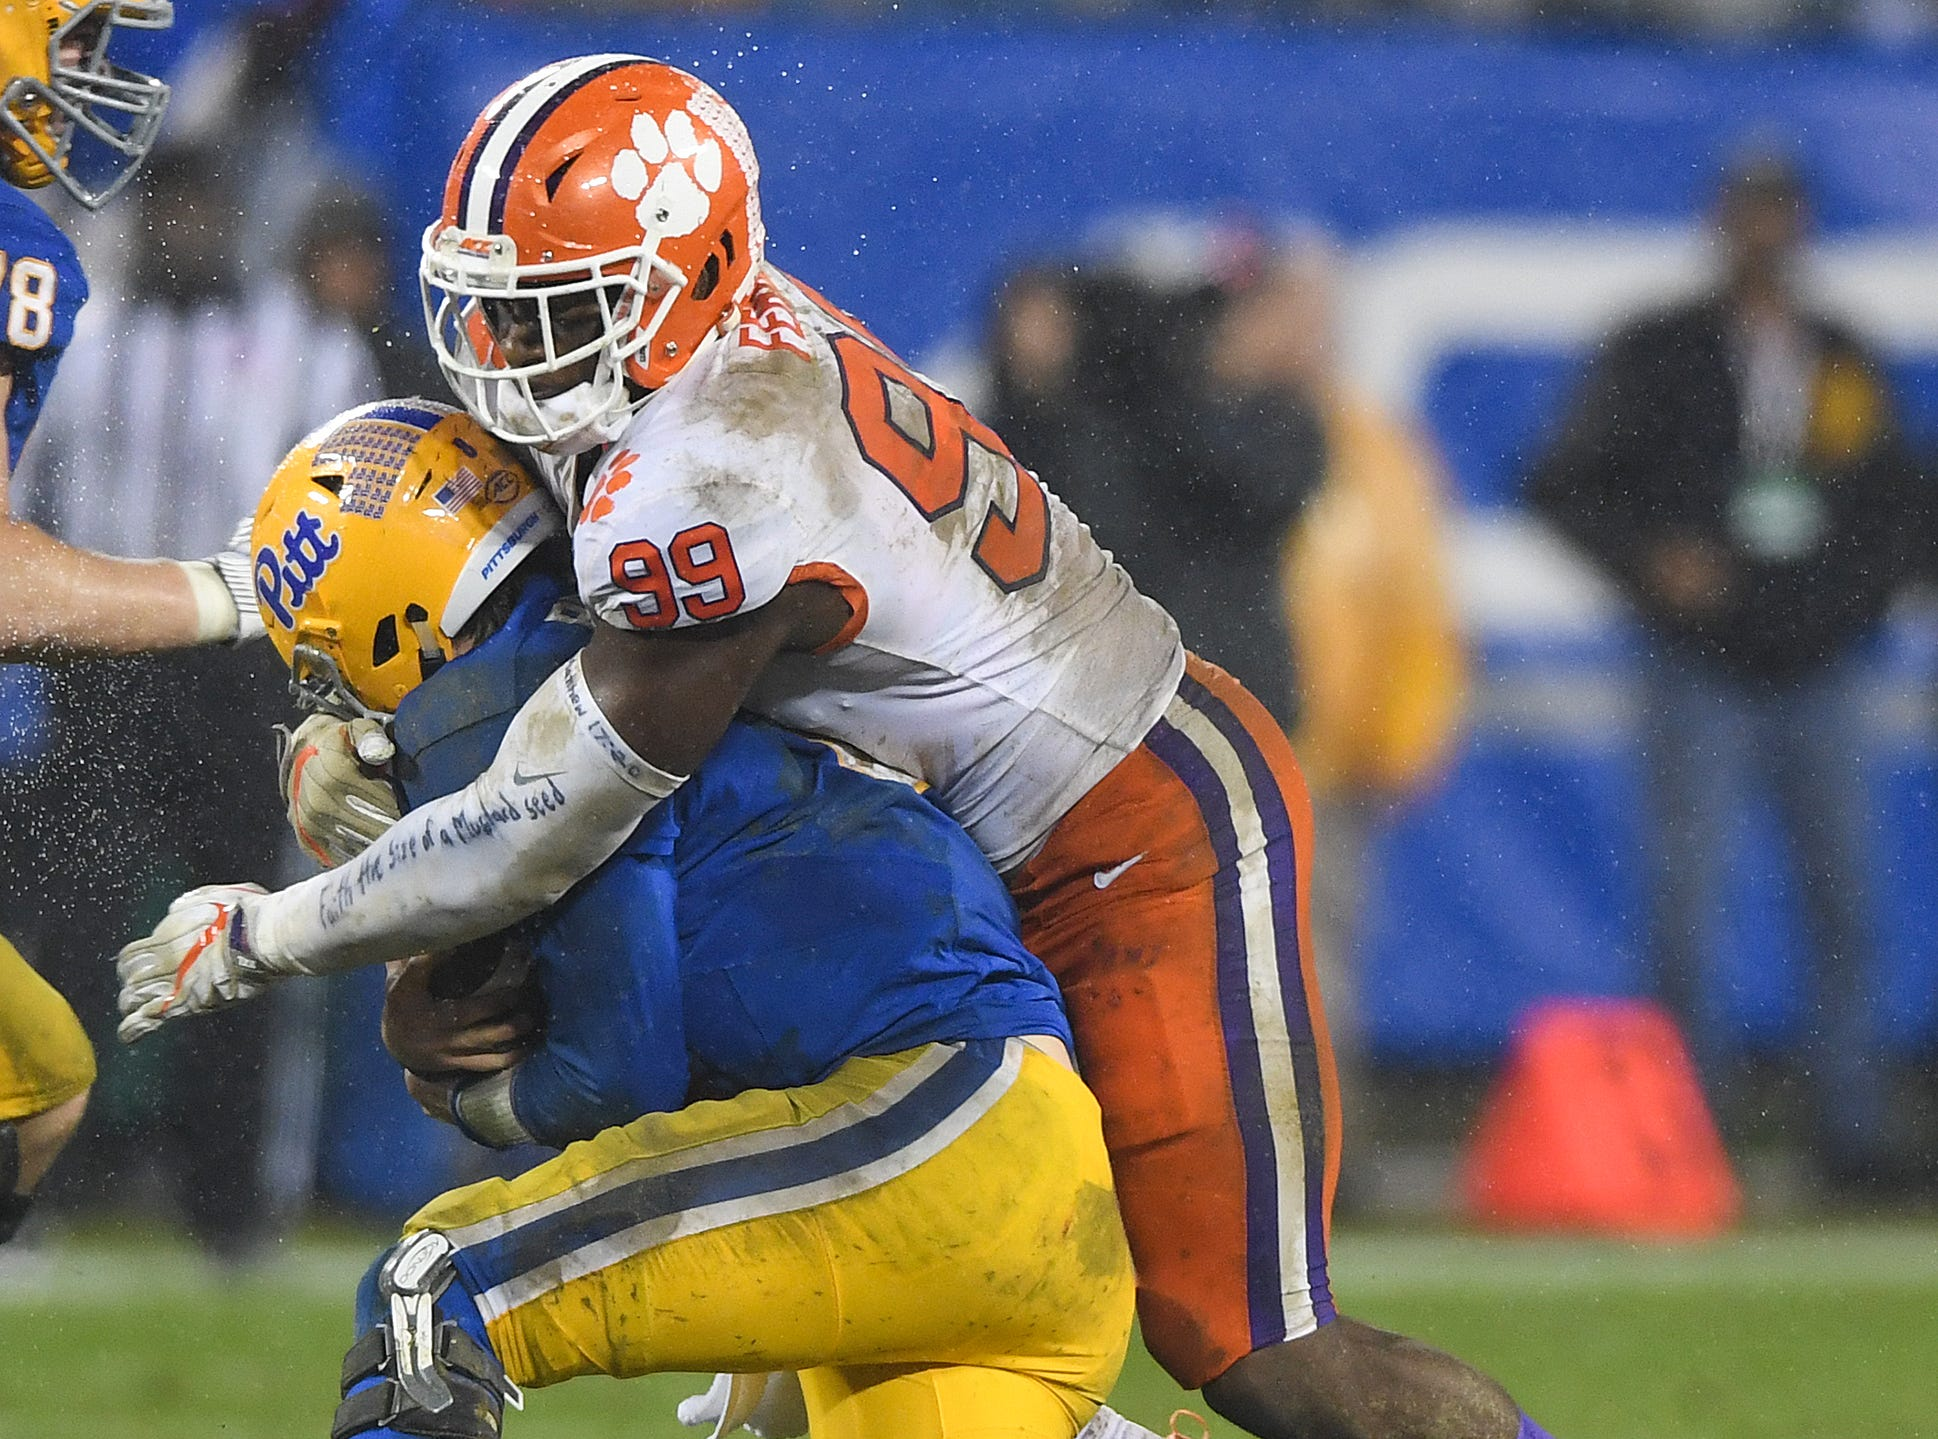 Clemson defensive lineman Clelin Ferrell (99) sacks Pittsburgh quarterback Kenny Pickett (8) during the 2nd quarter of the Dr. Pepper ACC Championship at Bank of America Stadium in Charlotte, N.C. Saturday, December 1, 2018.